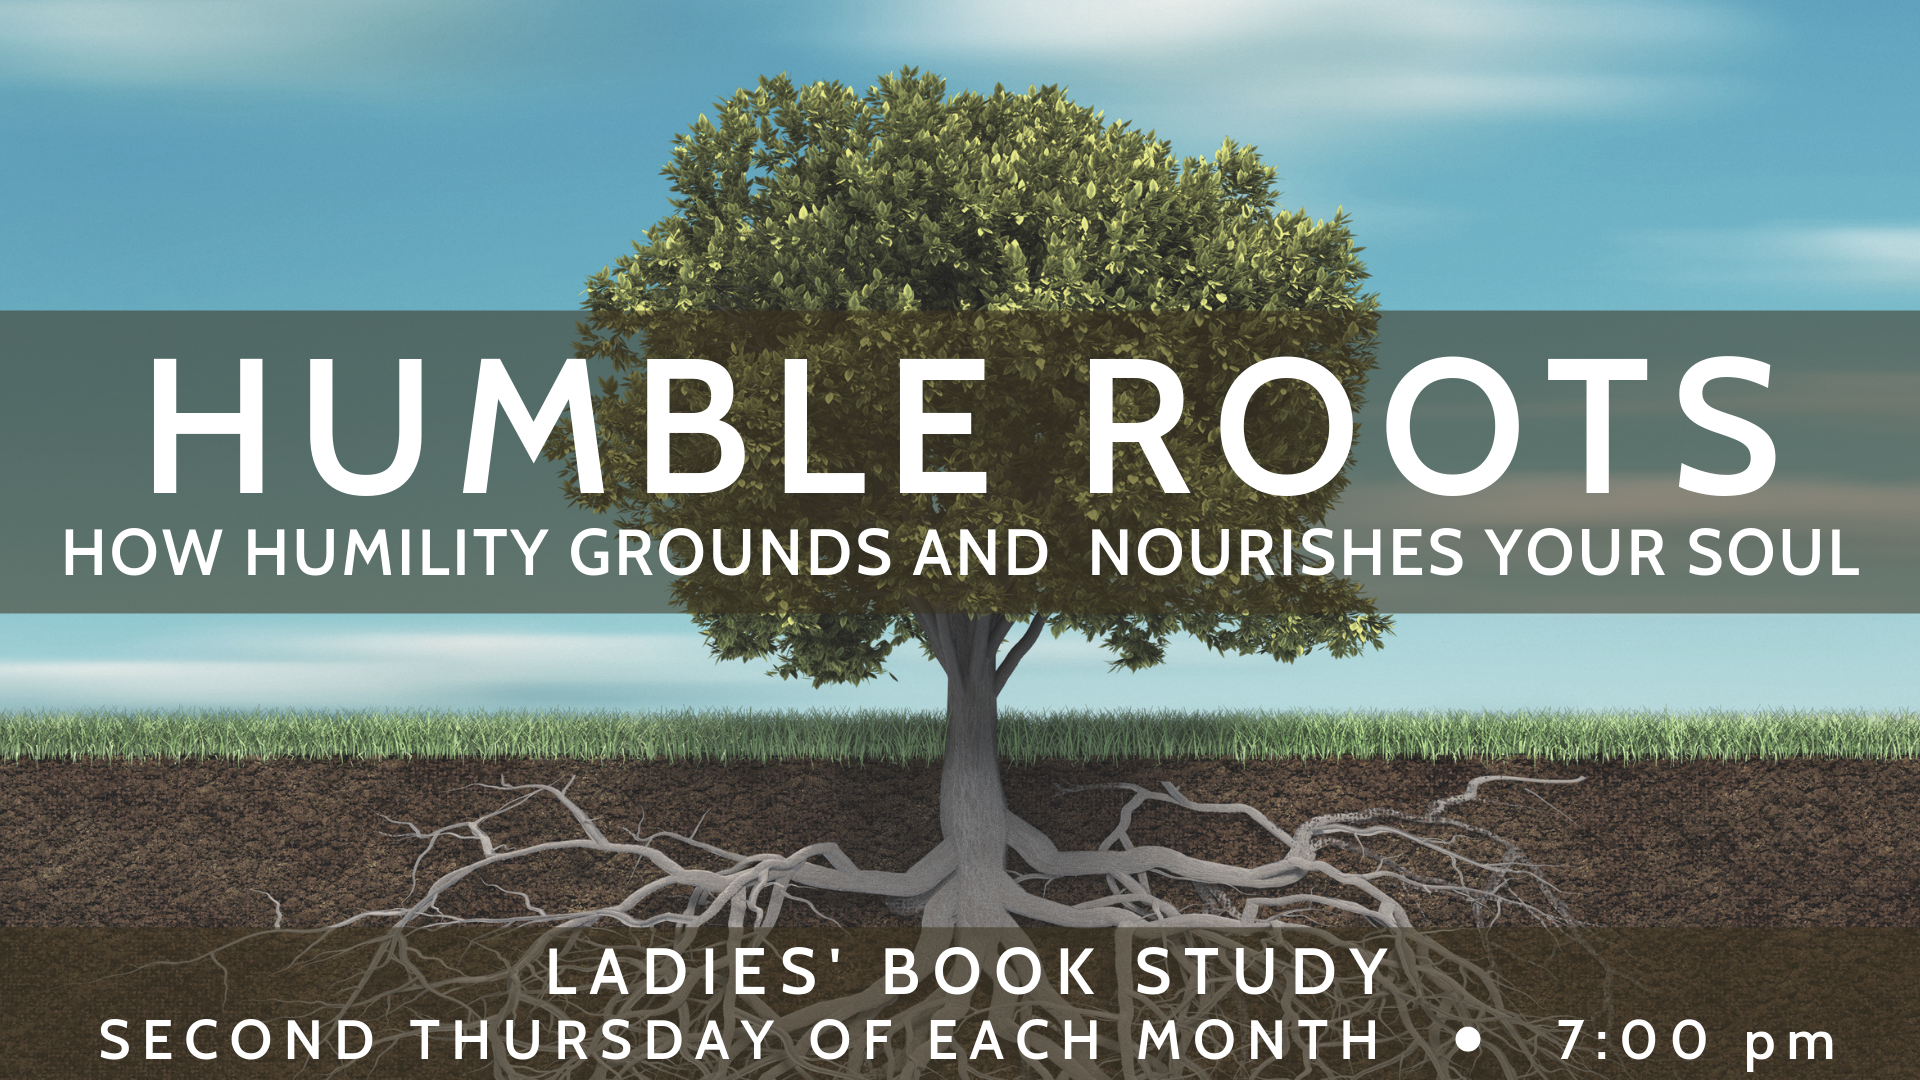 LBS - Humble Roots image